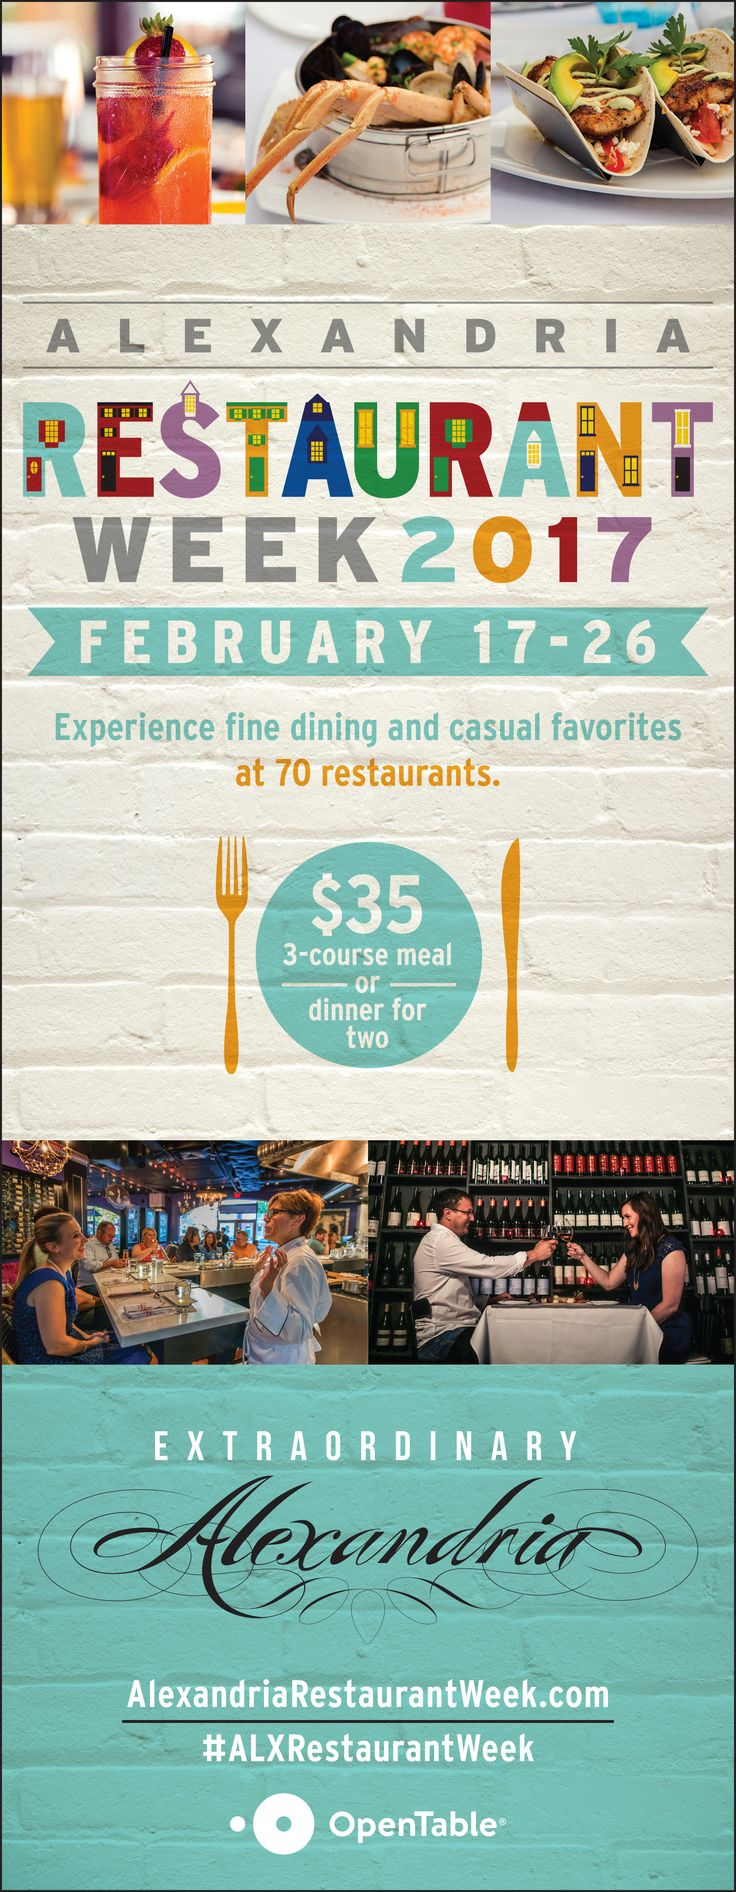 Alexandria Restaurant Week is on February 17-26, 2017. Check out 70 restaurants with special menus!